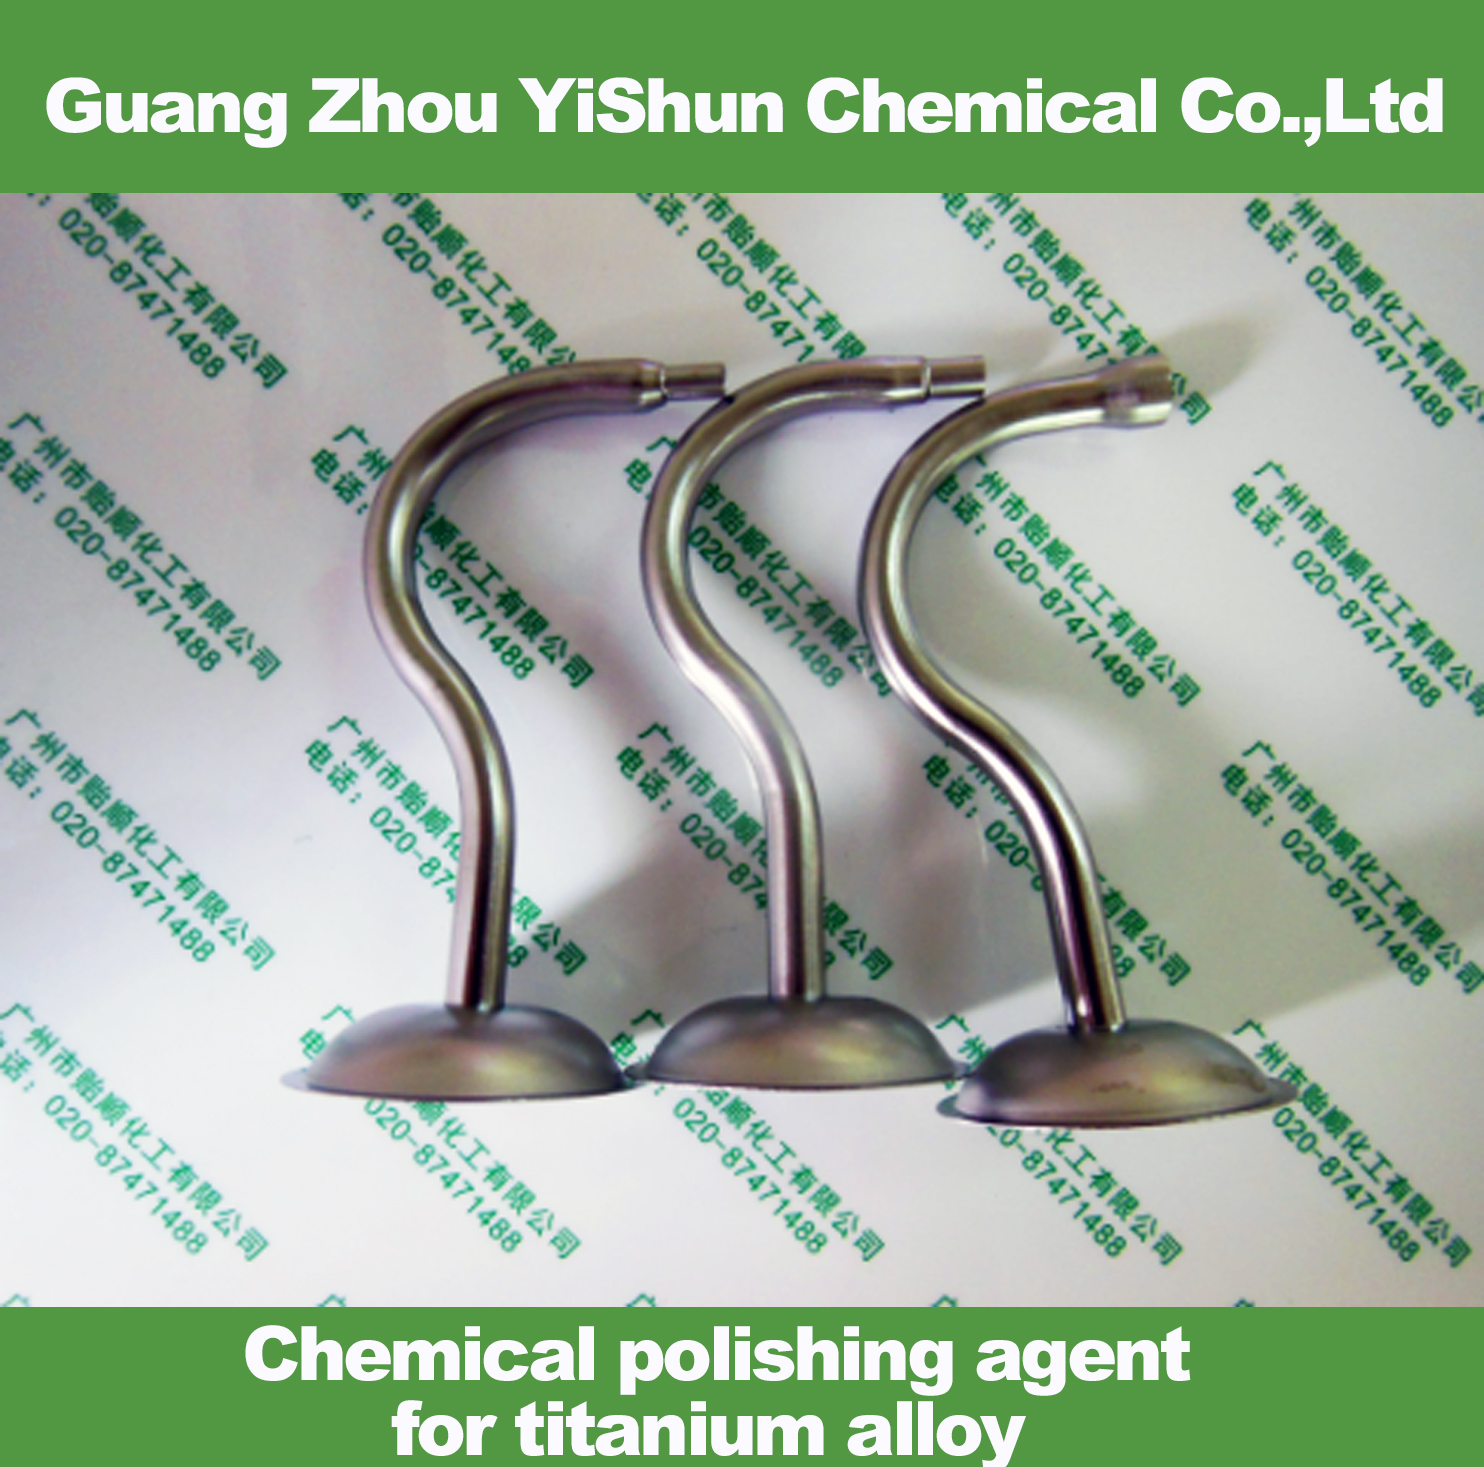 Titanium alloy polishing agent,Chemical polishing agent for titanium alloy,Titanium alloy brightener